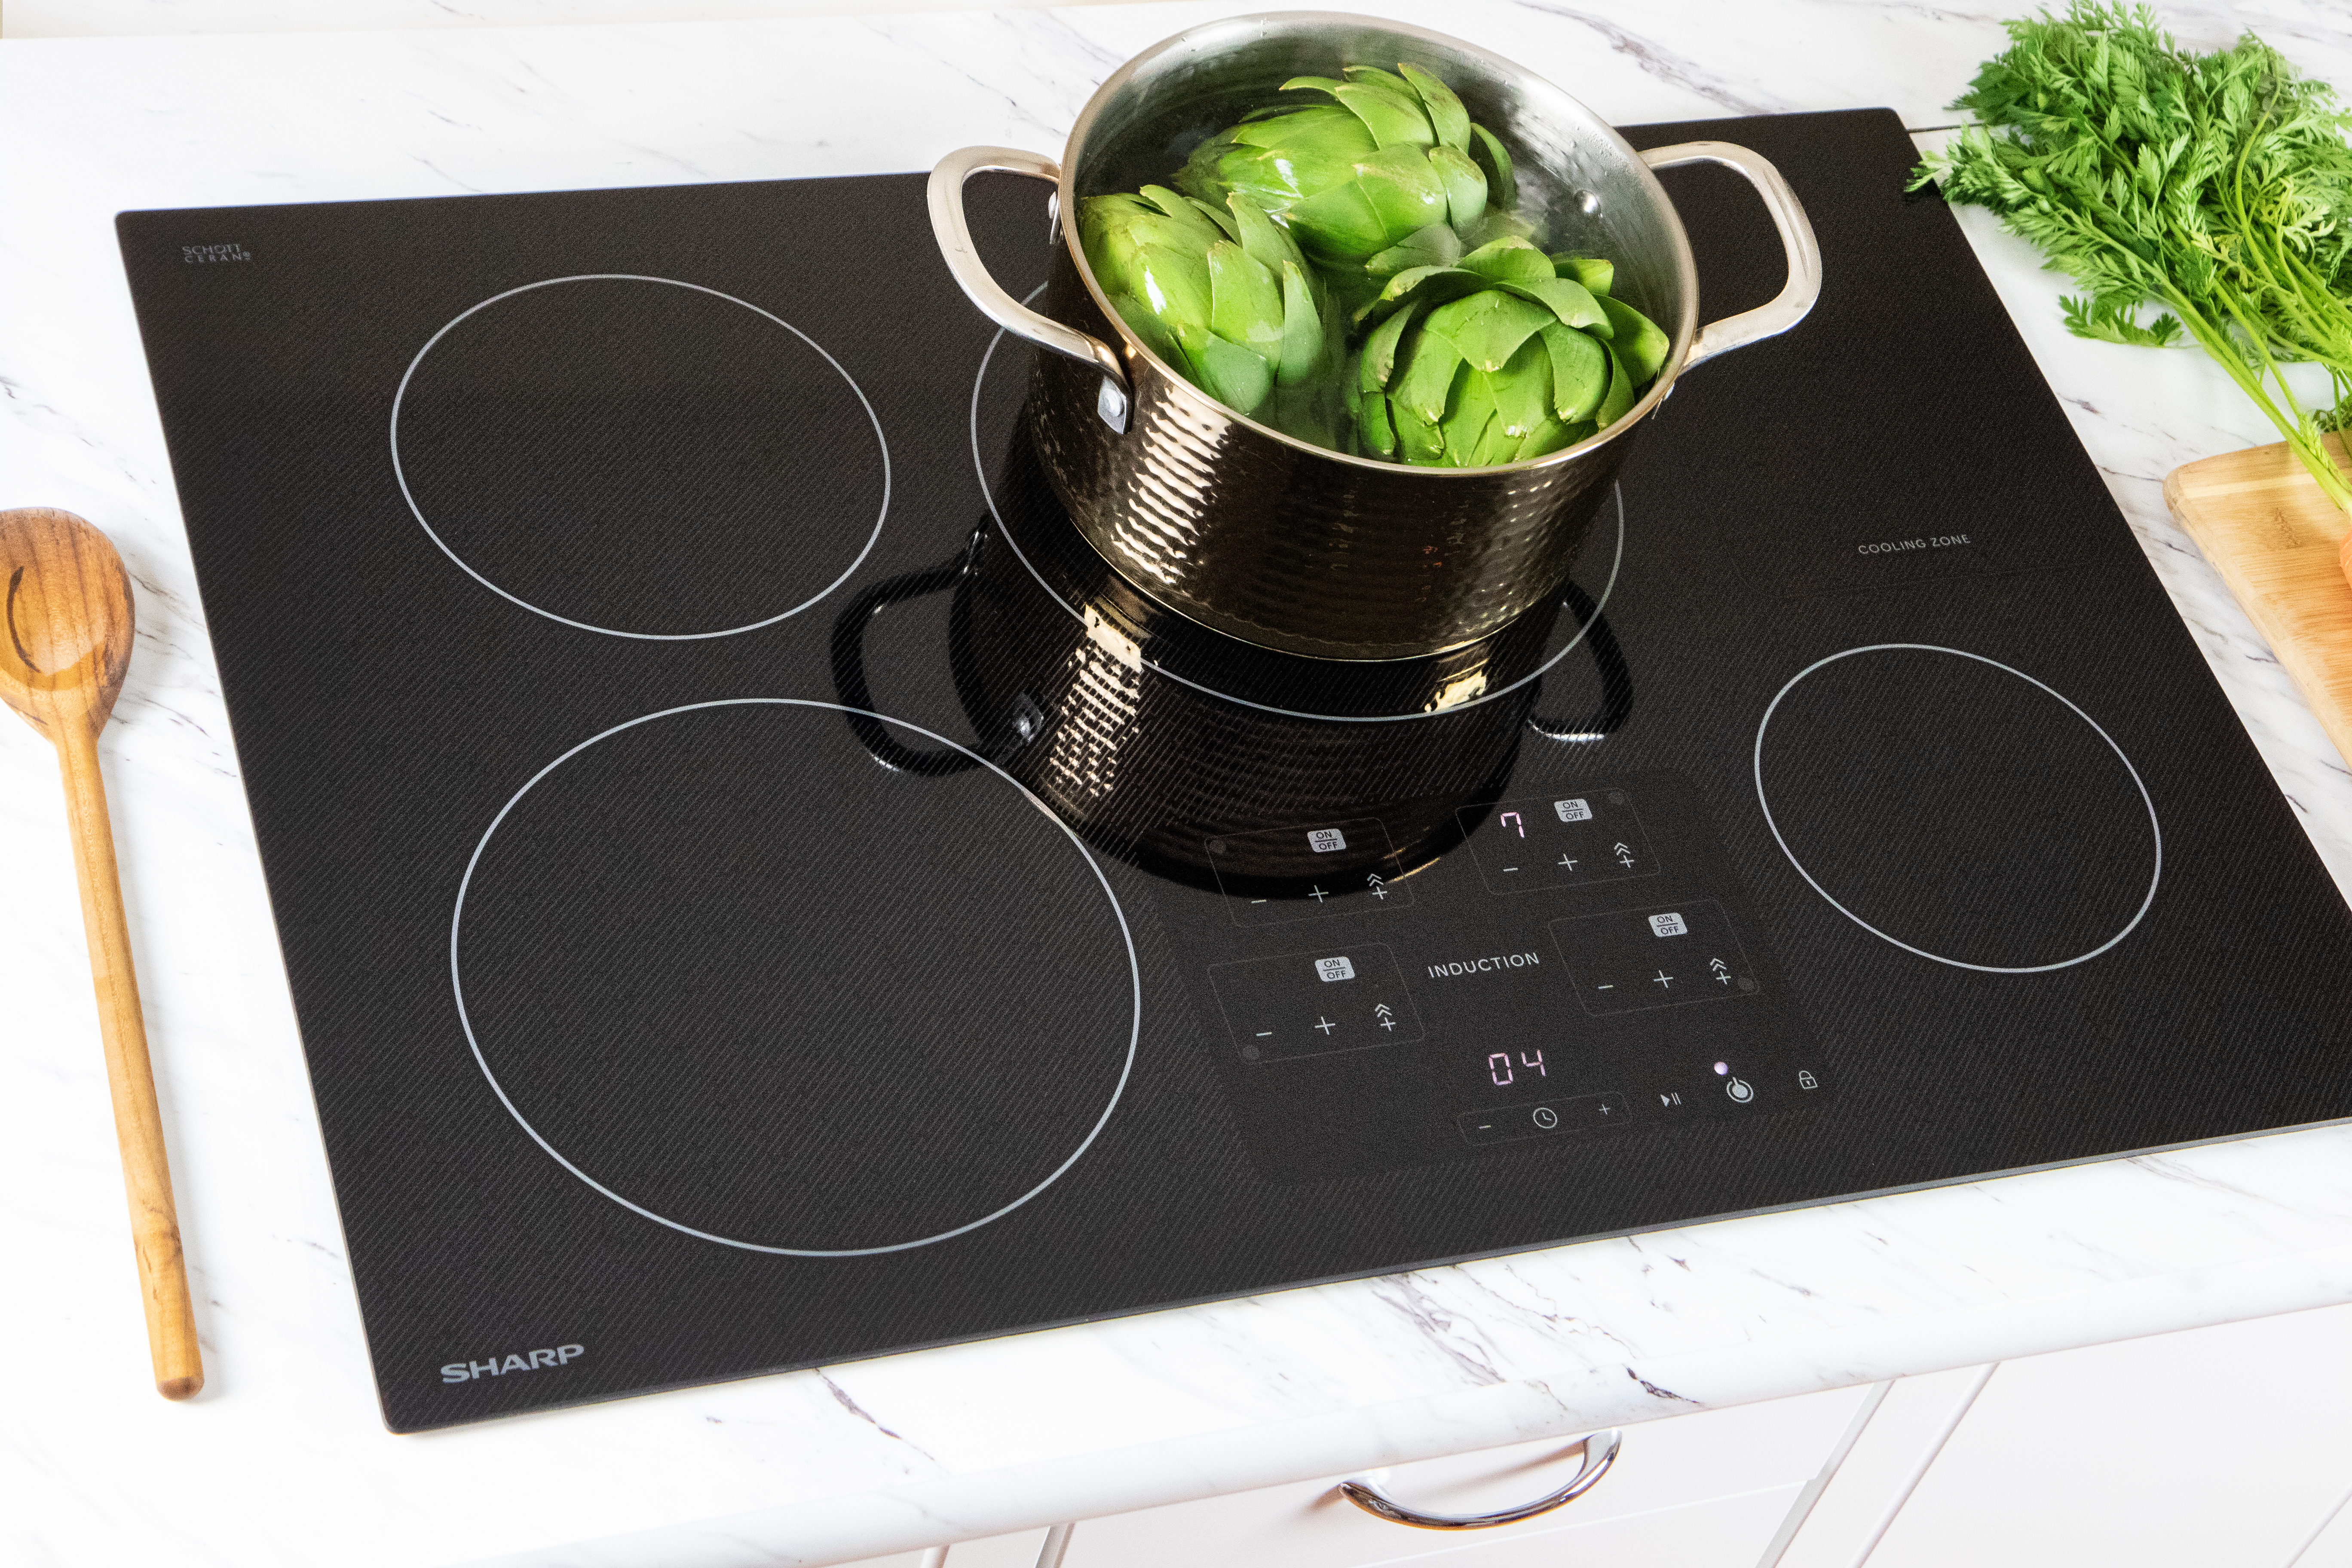 """The Sharp 30"""" Induction Cooktop Made with Premium SCHOTT® Glass (SDH3042DB)"""